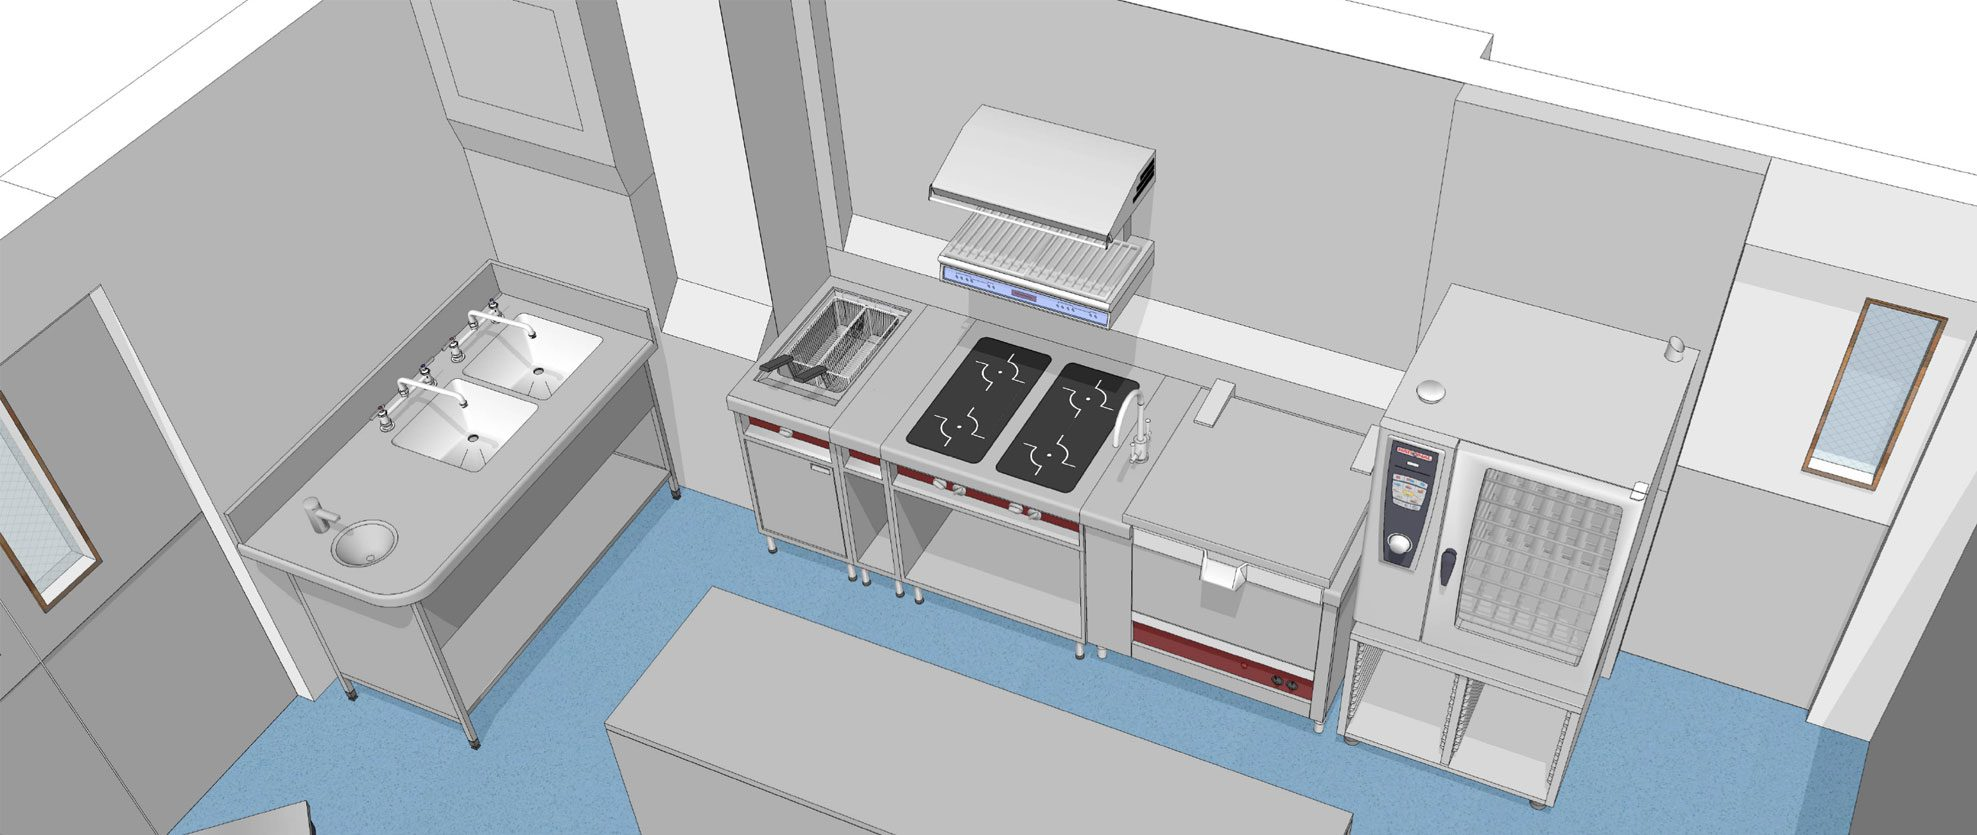 Ergonomic Flow | Small Commercial Kitchen Design